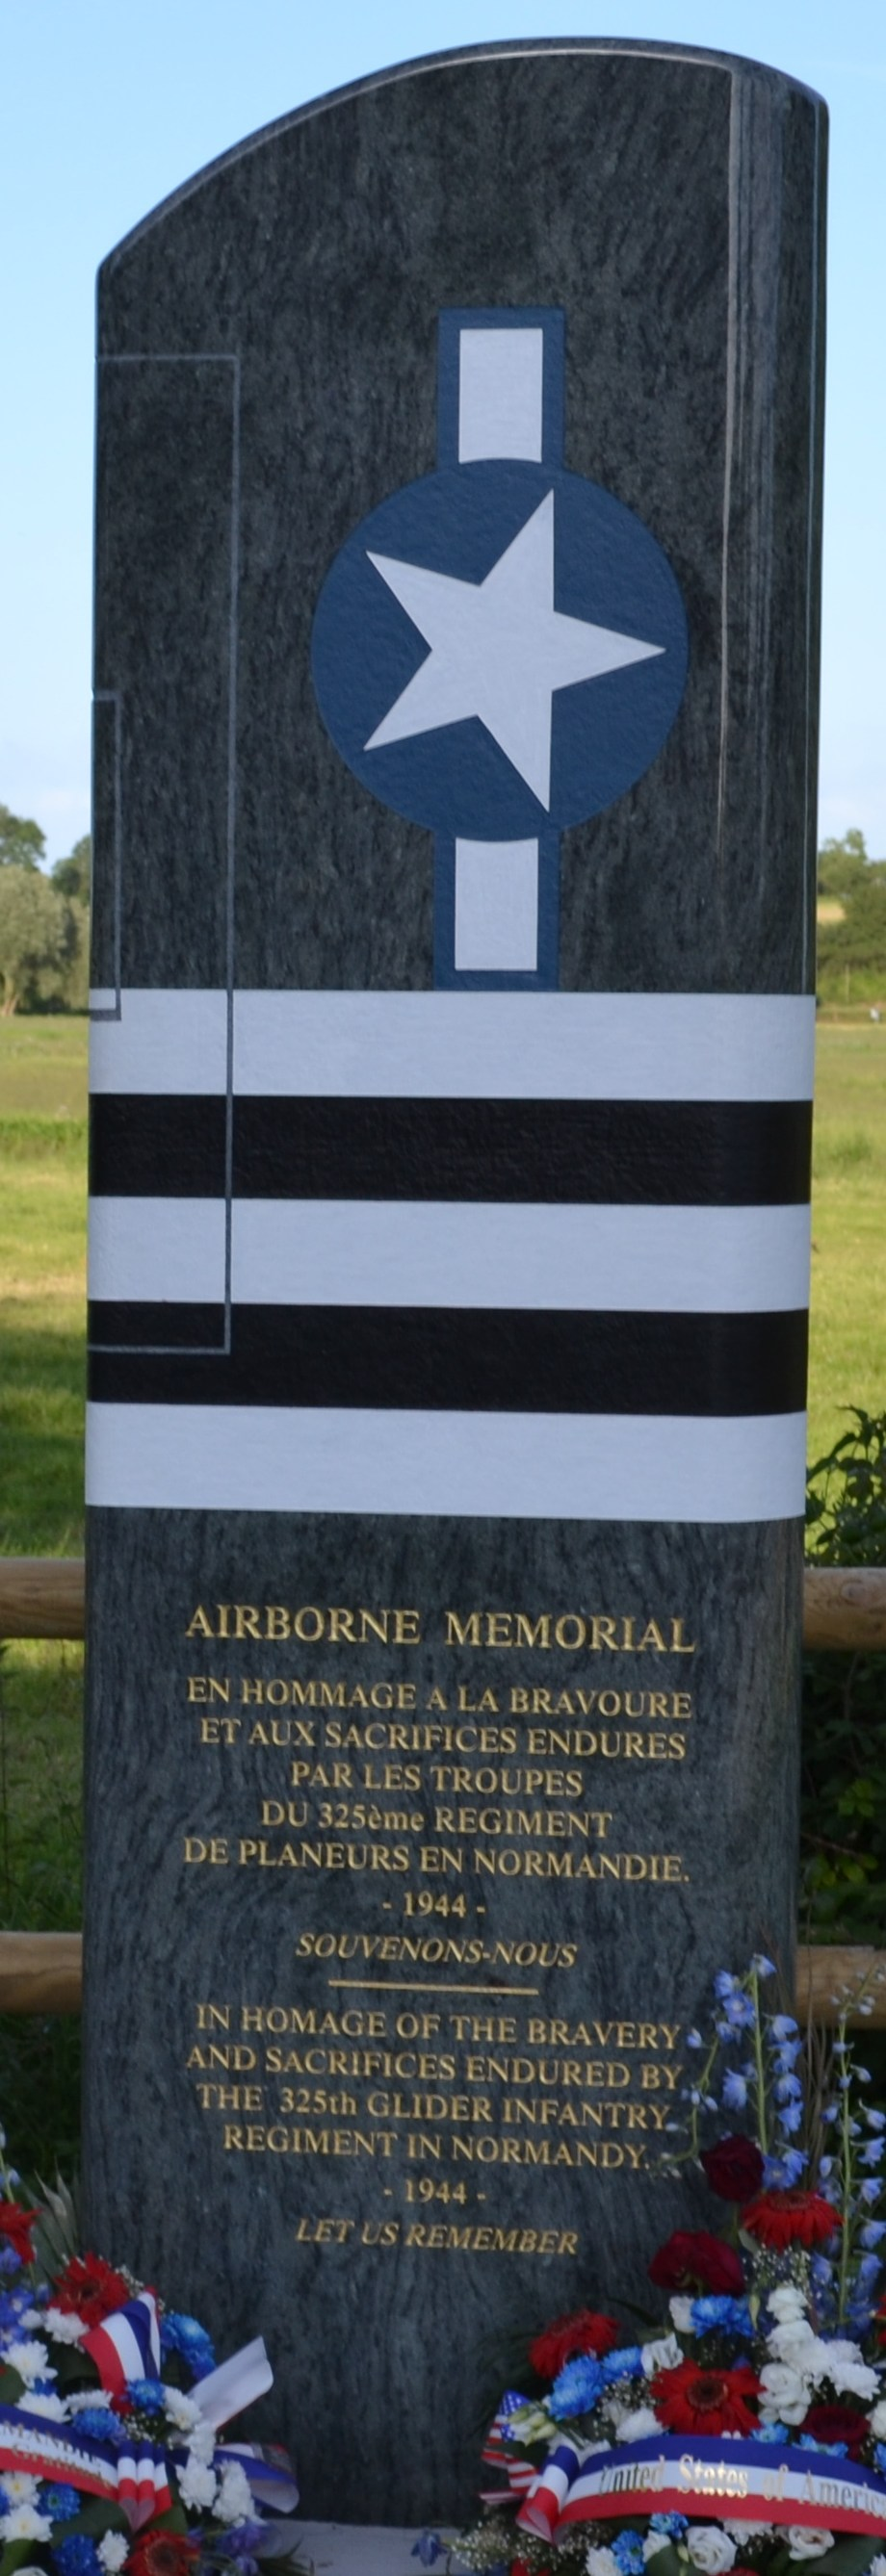 St鑜e 325th Glider Regiment - Airborne Memorial Picauville Manche (50)